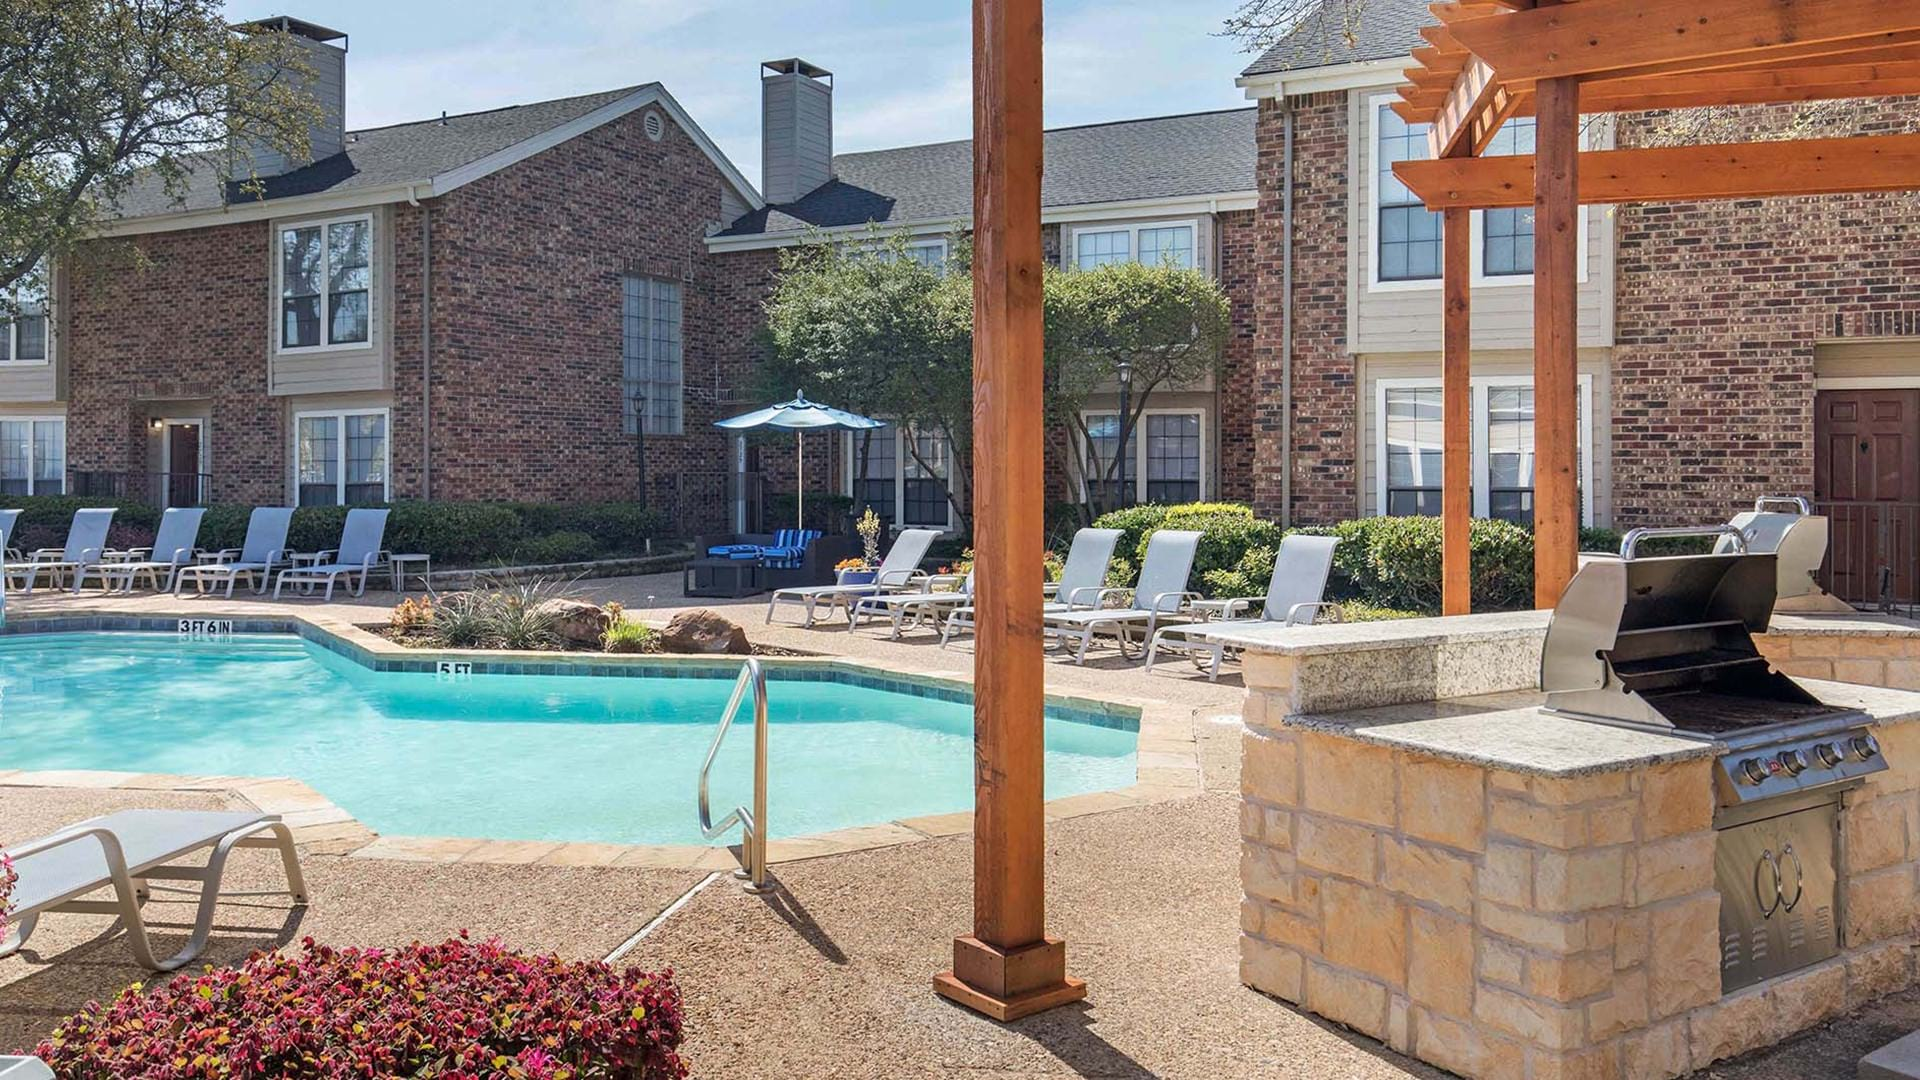 Spacious pool with a large pool deck and outdoor grill